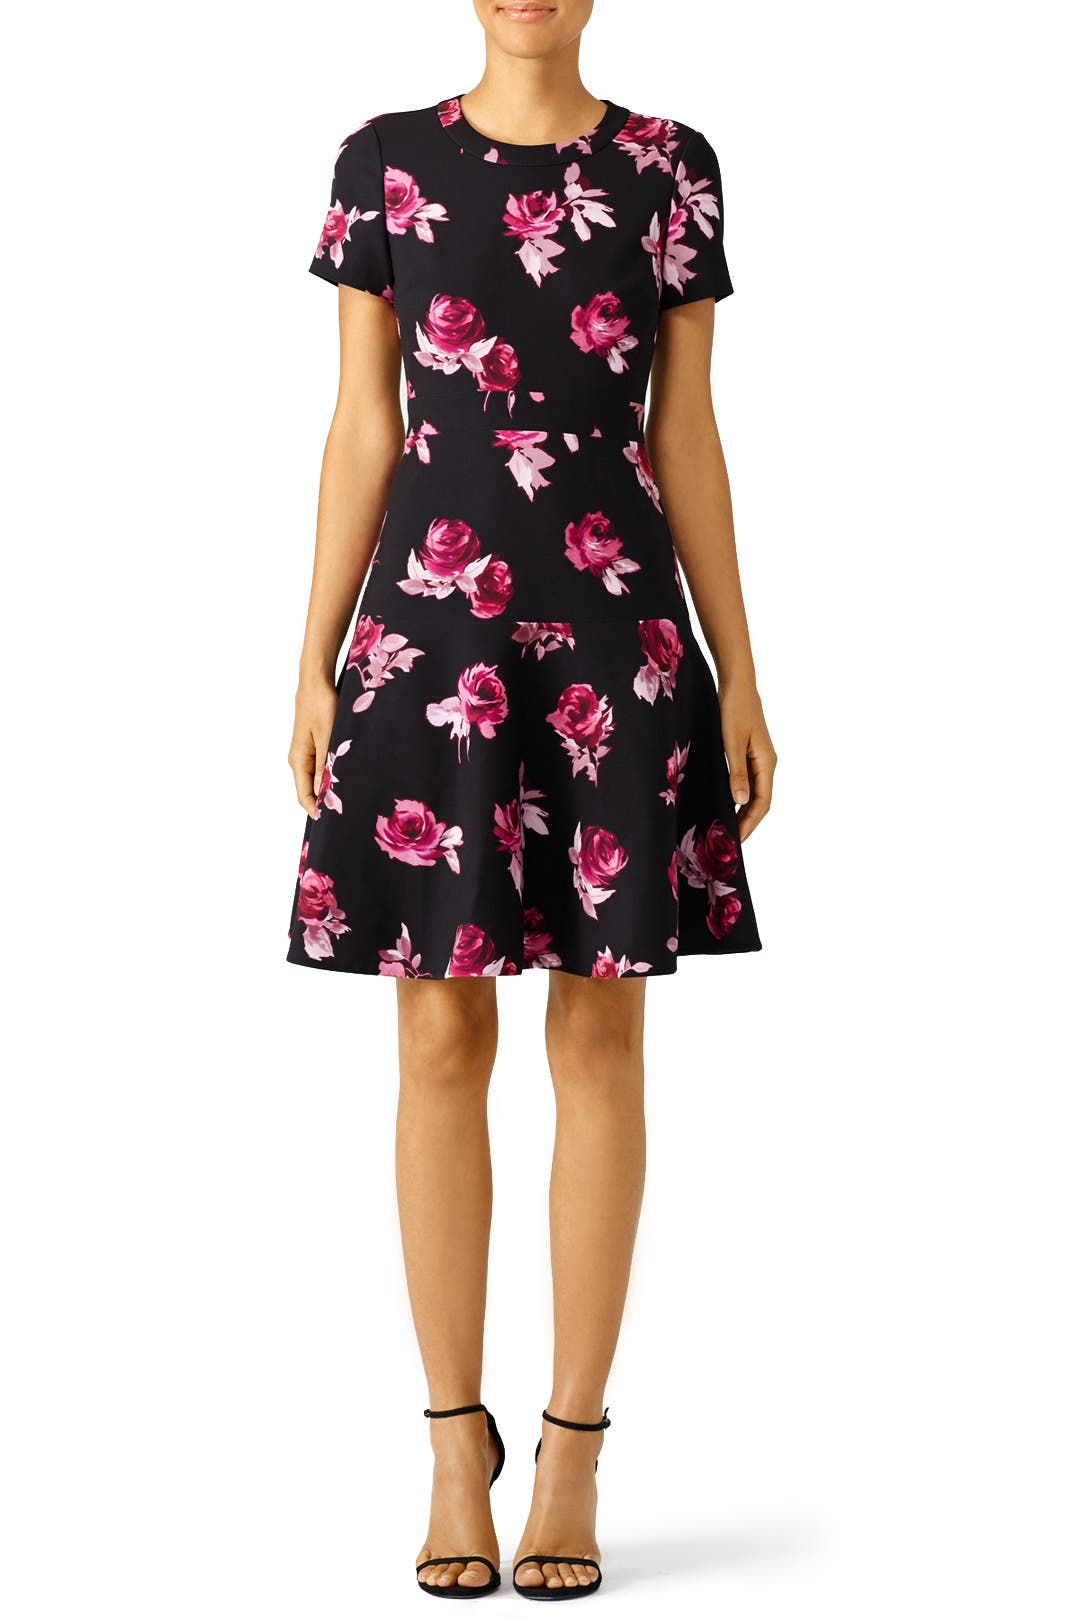 Encore Rose Crepe Dress By Kate Spade New York For 65